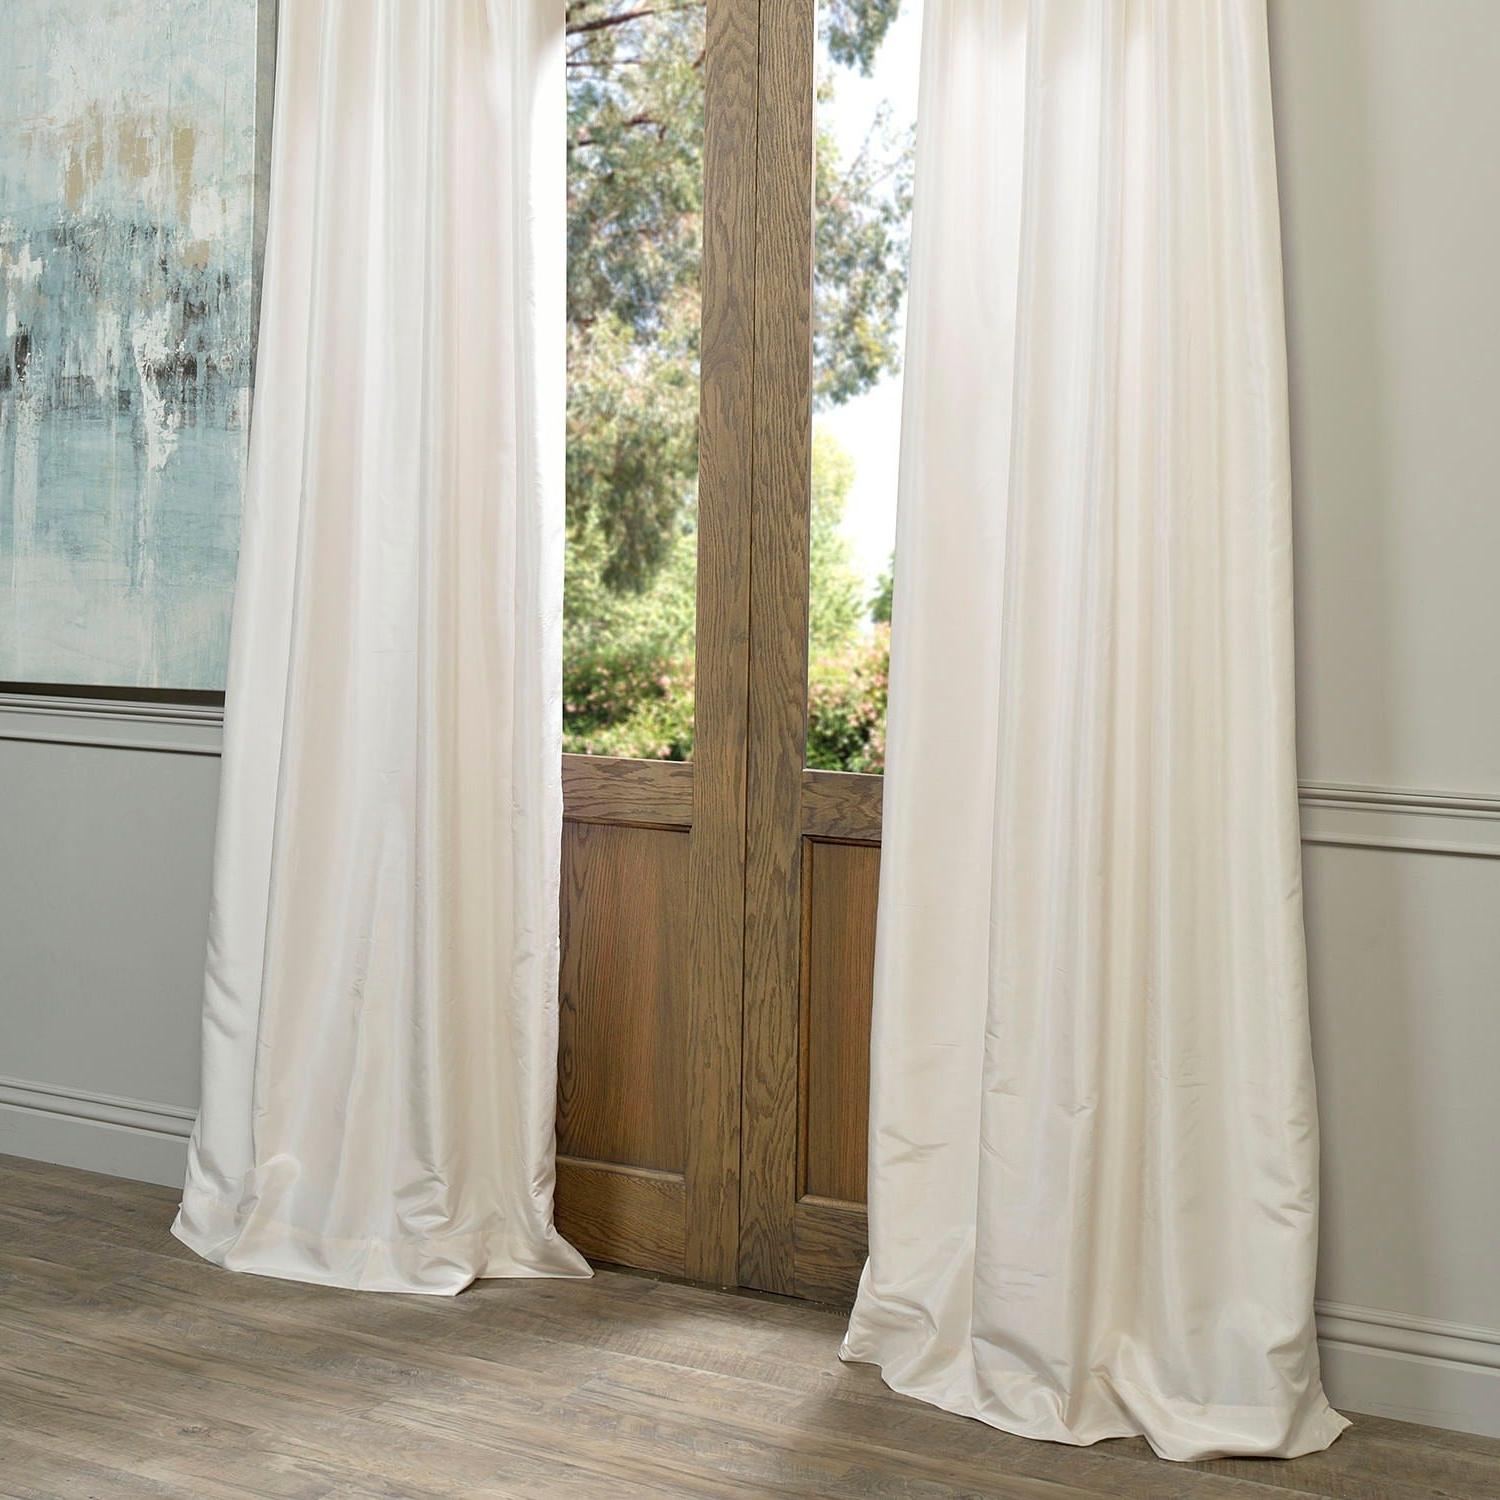 """Off White Vintage Faux Textured Silk Curtains Regarding Most Recent Exclusive Fabrics Off White Vintage Faux Textured Dupioni Silk Curtain Panel 96""""l (as Is Item) (View 11 of 20)"""